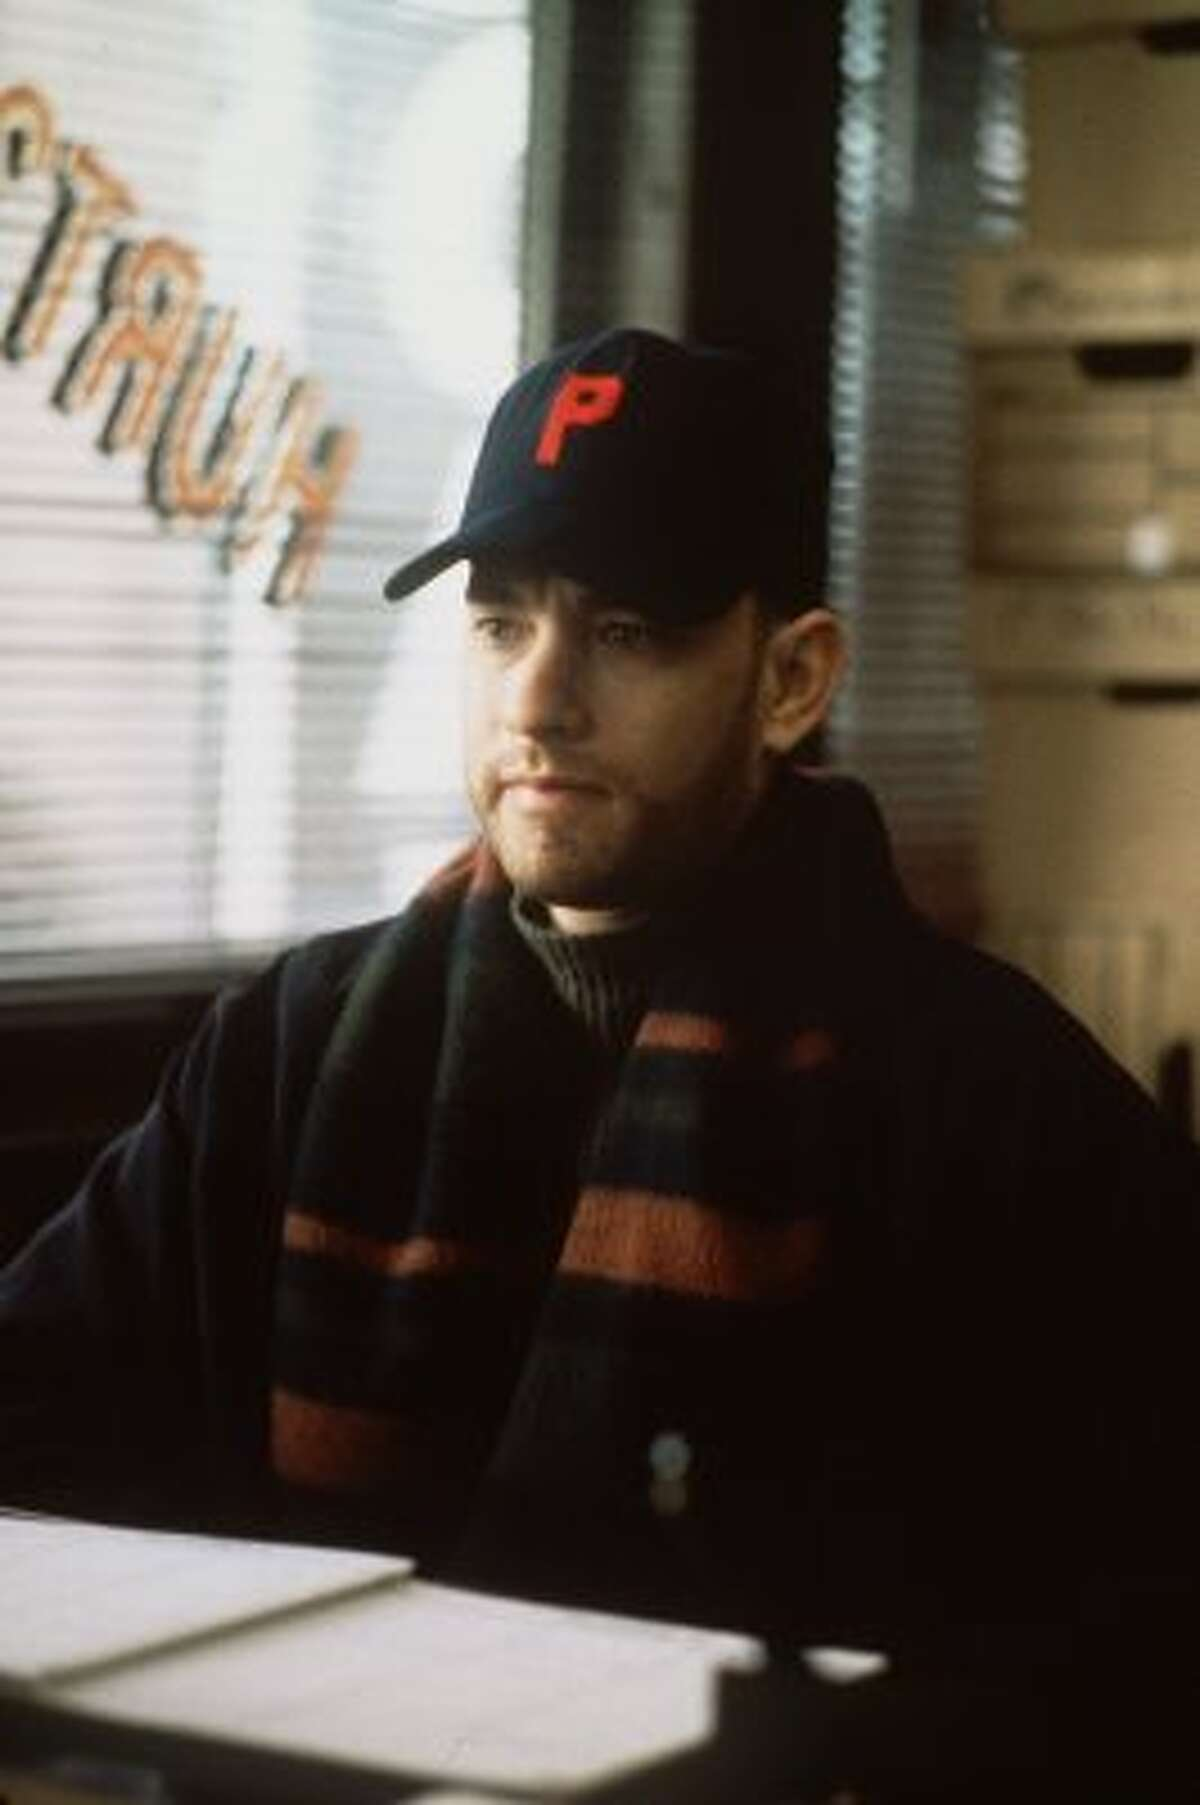 'Philadelphia' The 1993 film 'Philadelphia,' starring Tom Hanks. Hanks plays an HIV-positive attorney who is suing his former place of employment after Hanks' character gets fired.